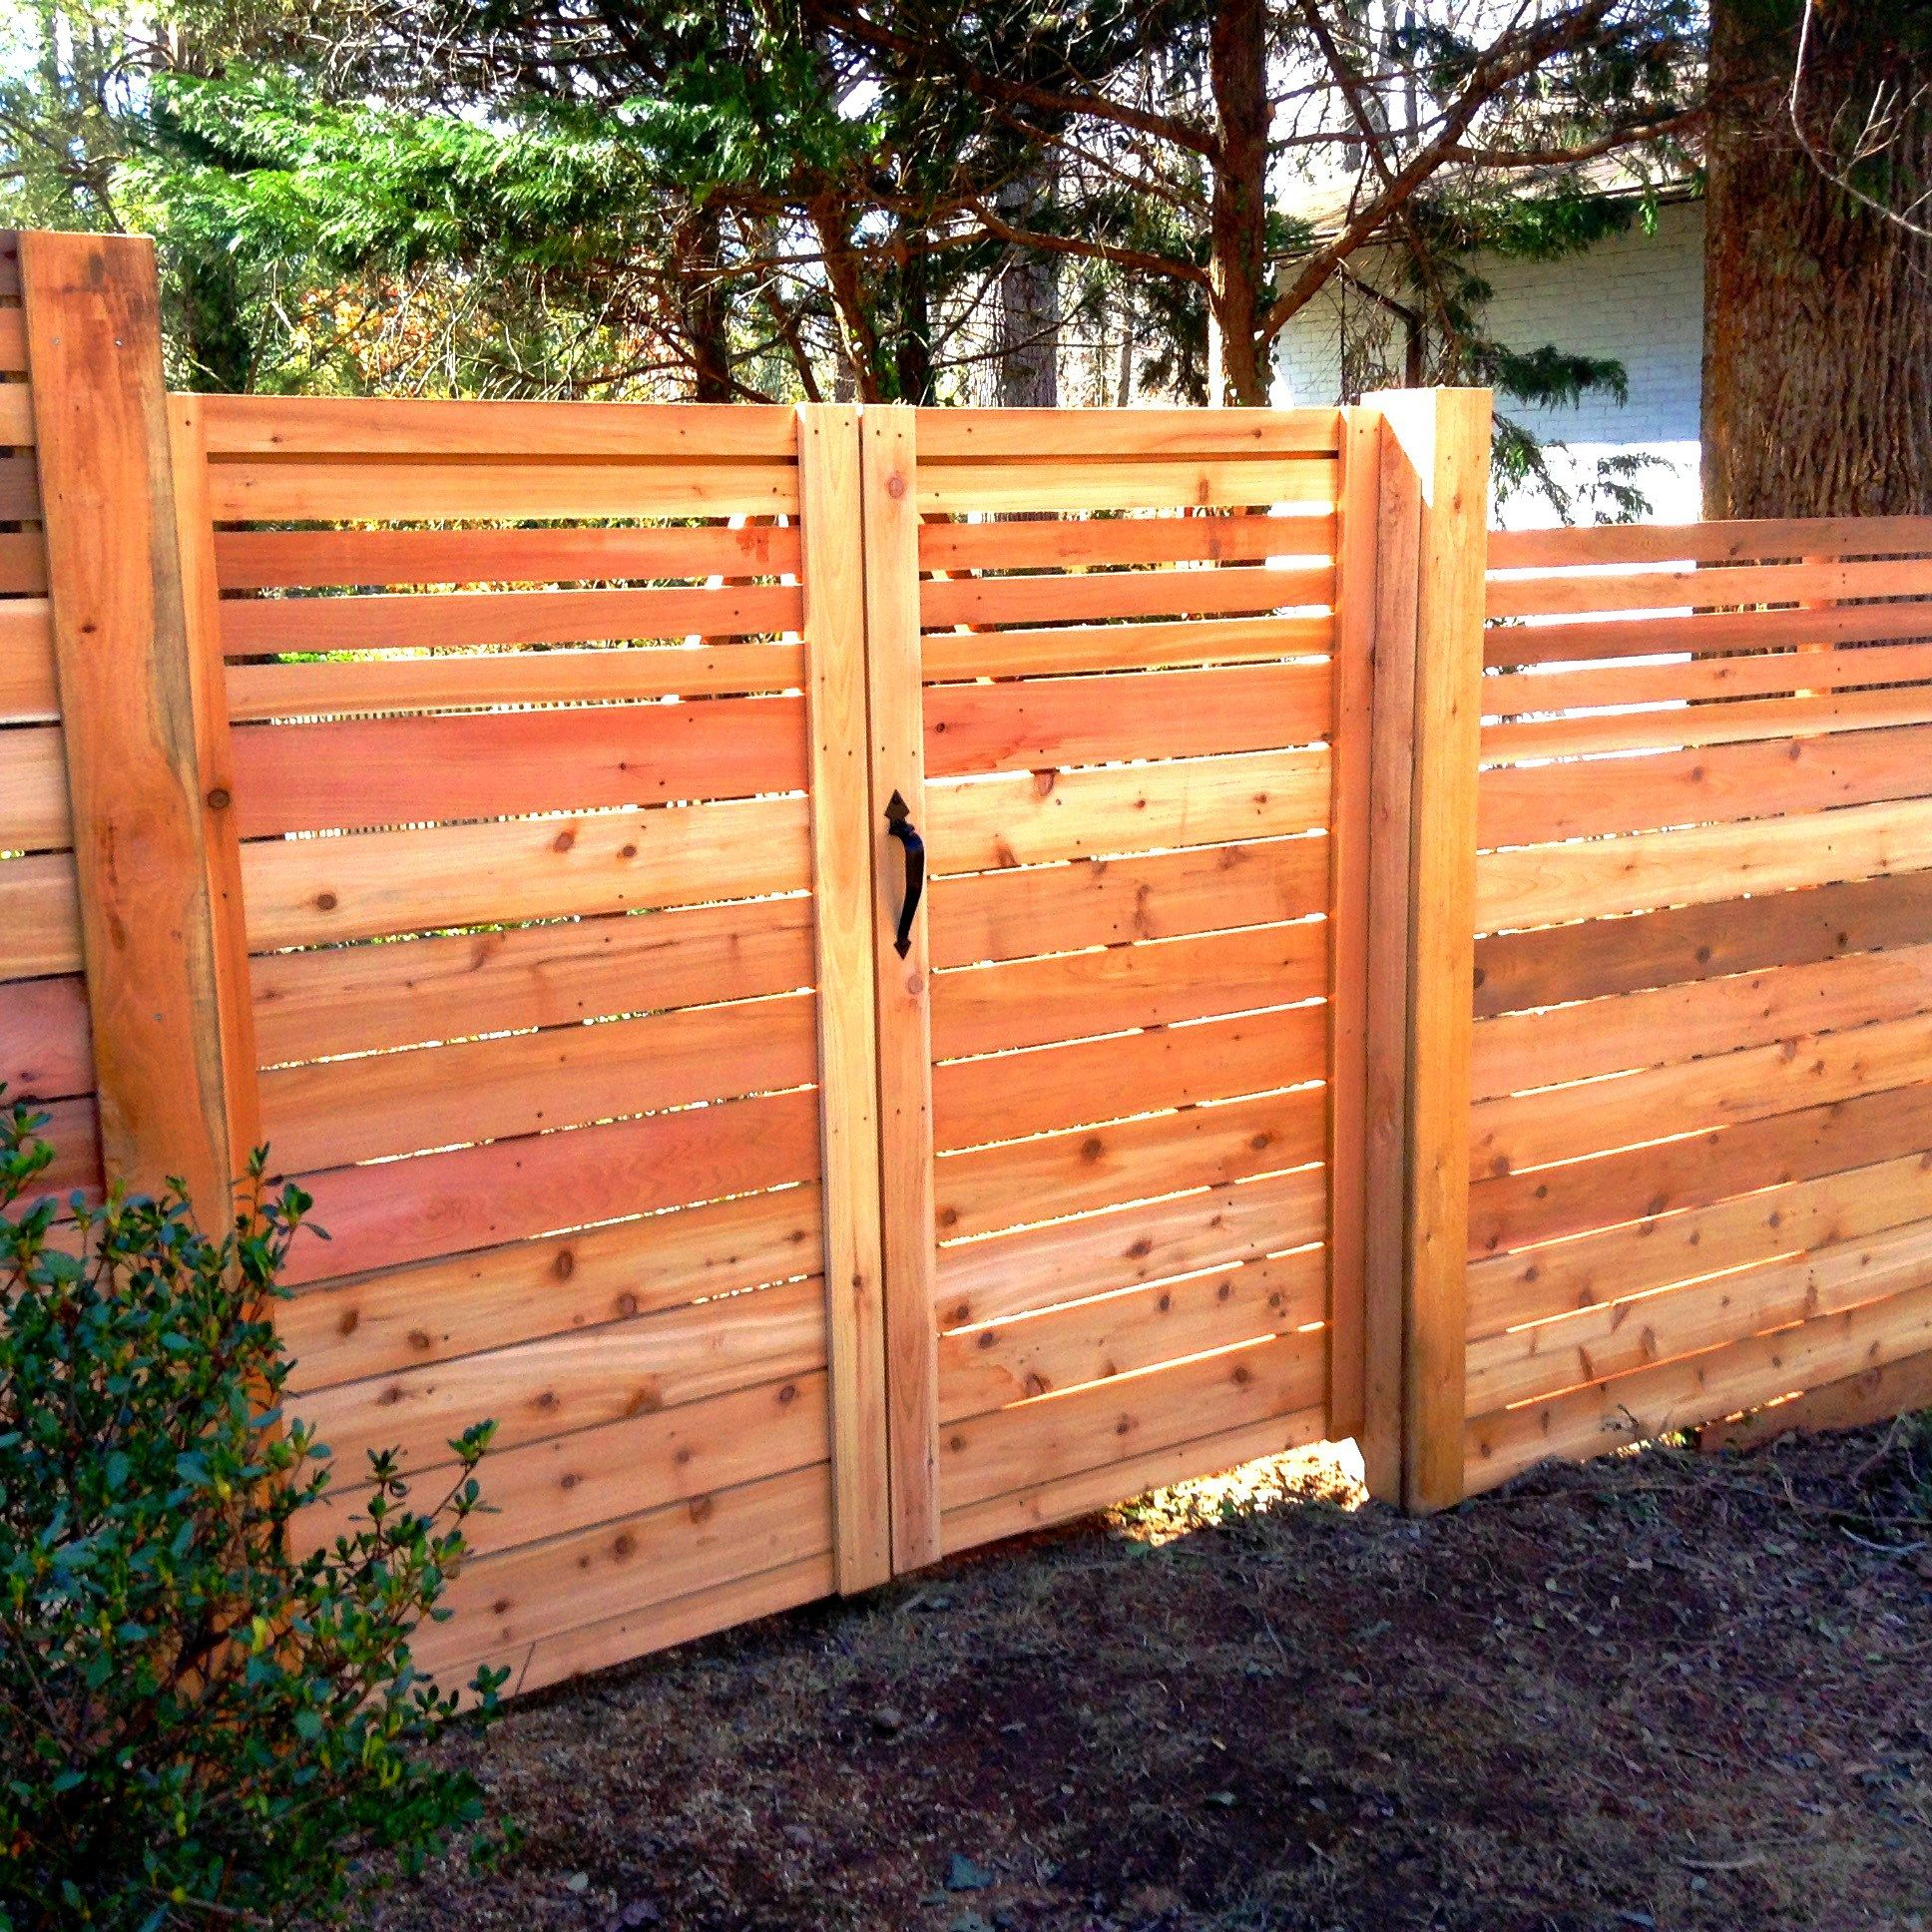 Fence Designs Lions Fence Award Winning Local Co Fence Gate